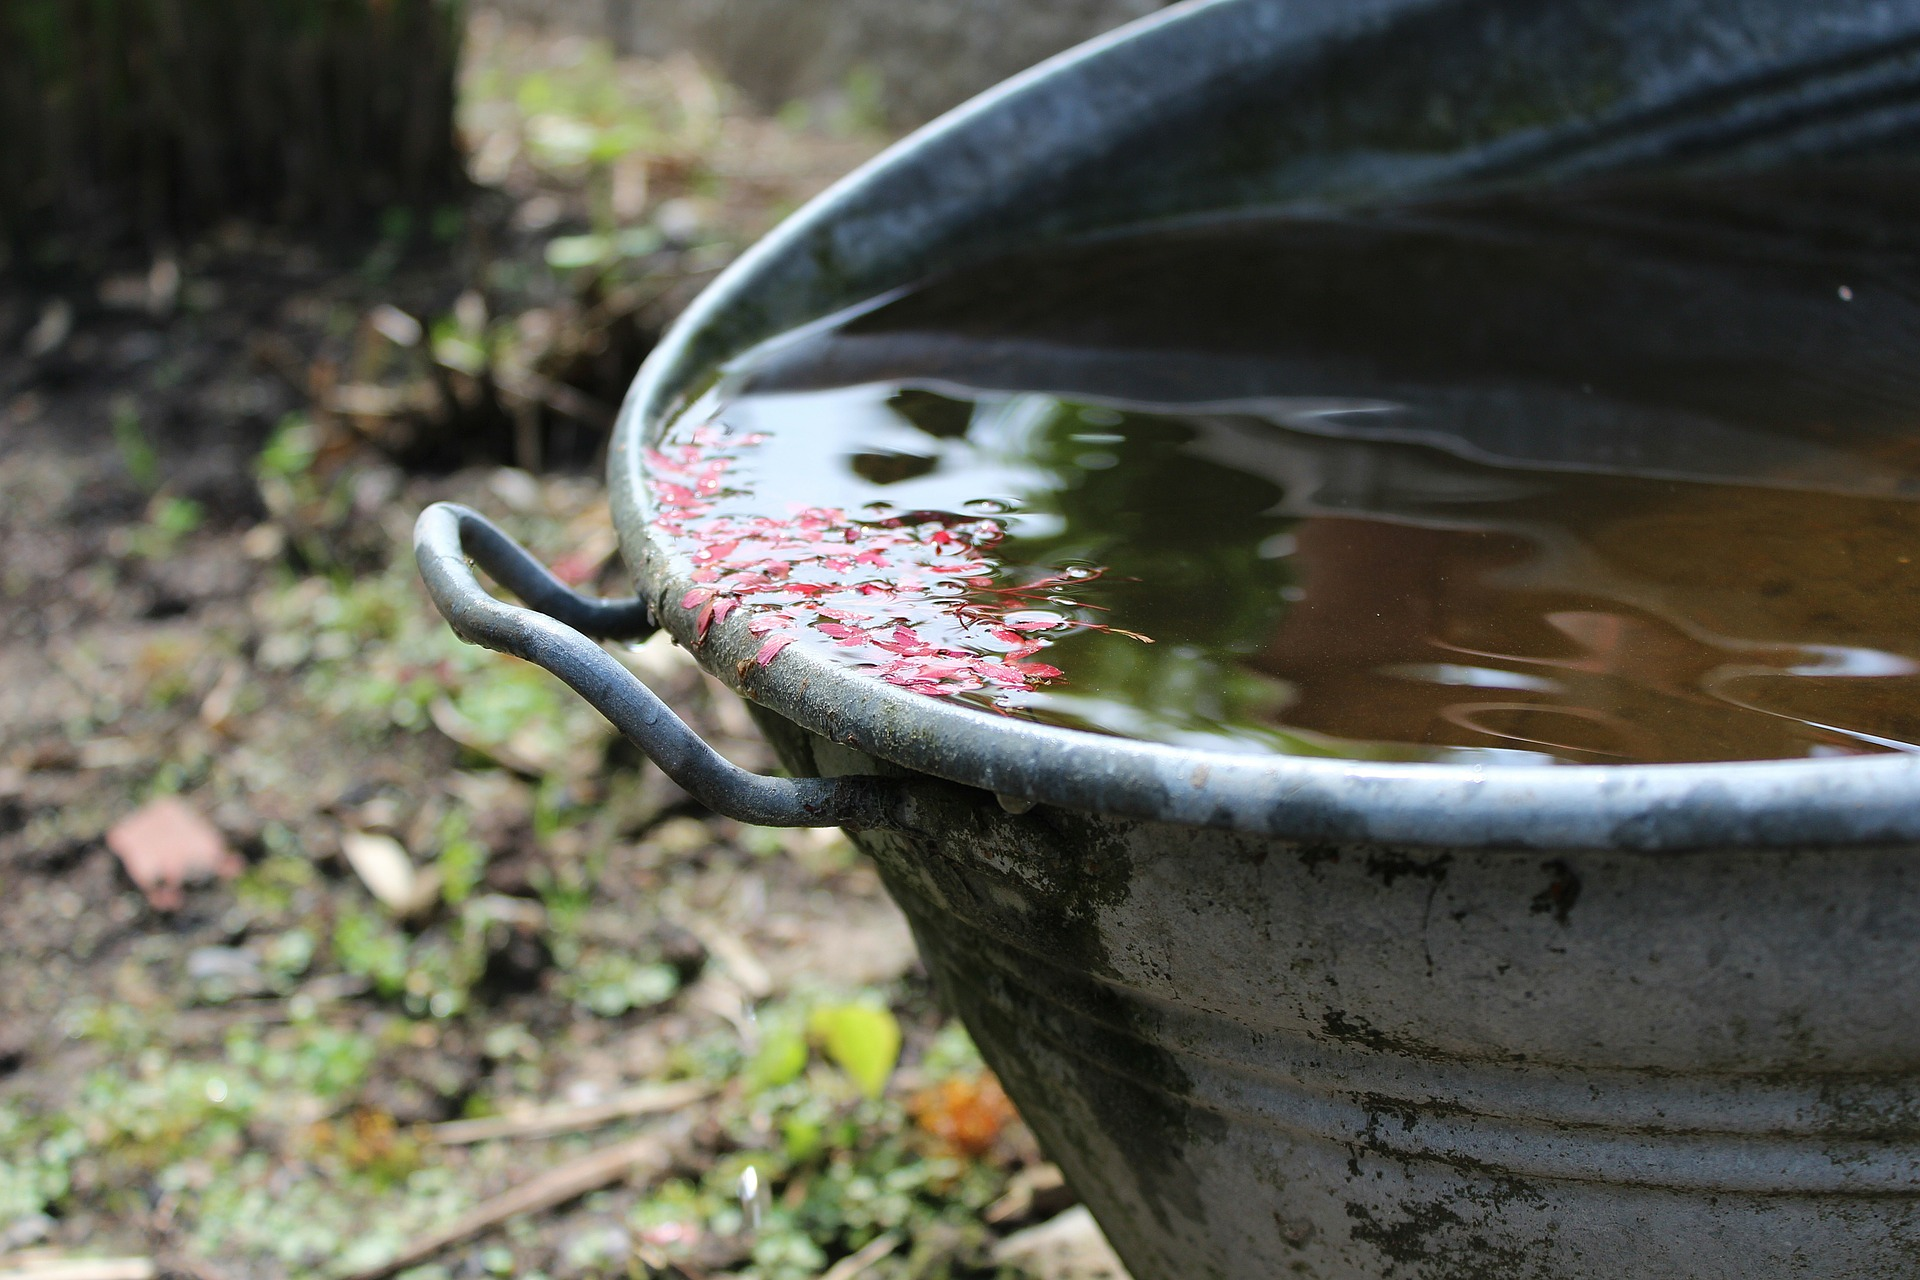 Water in bucket